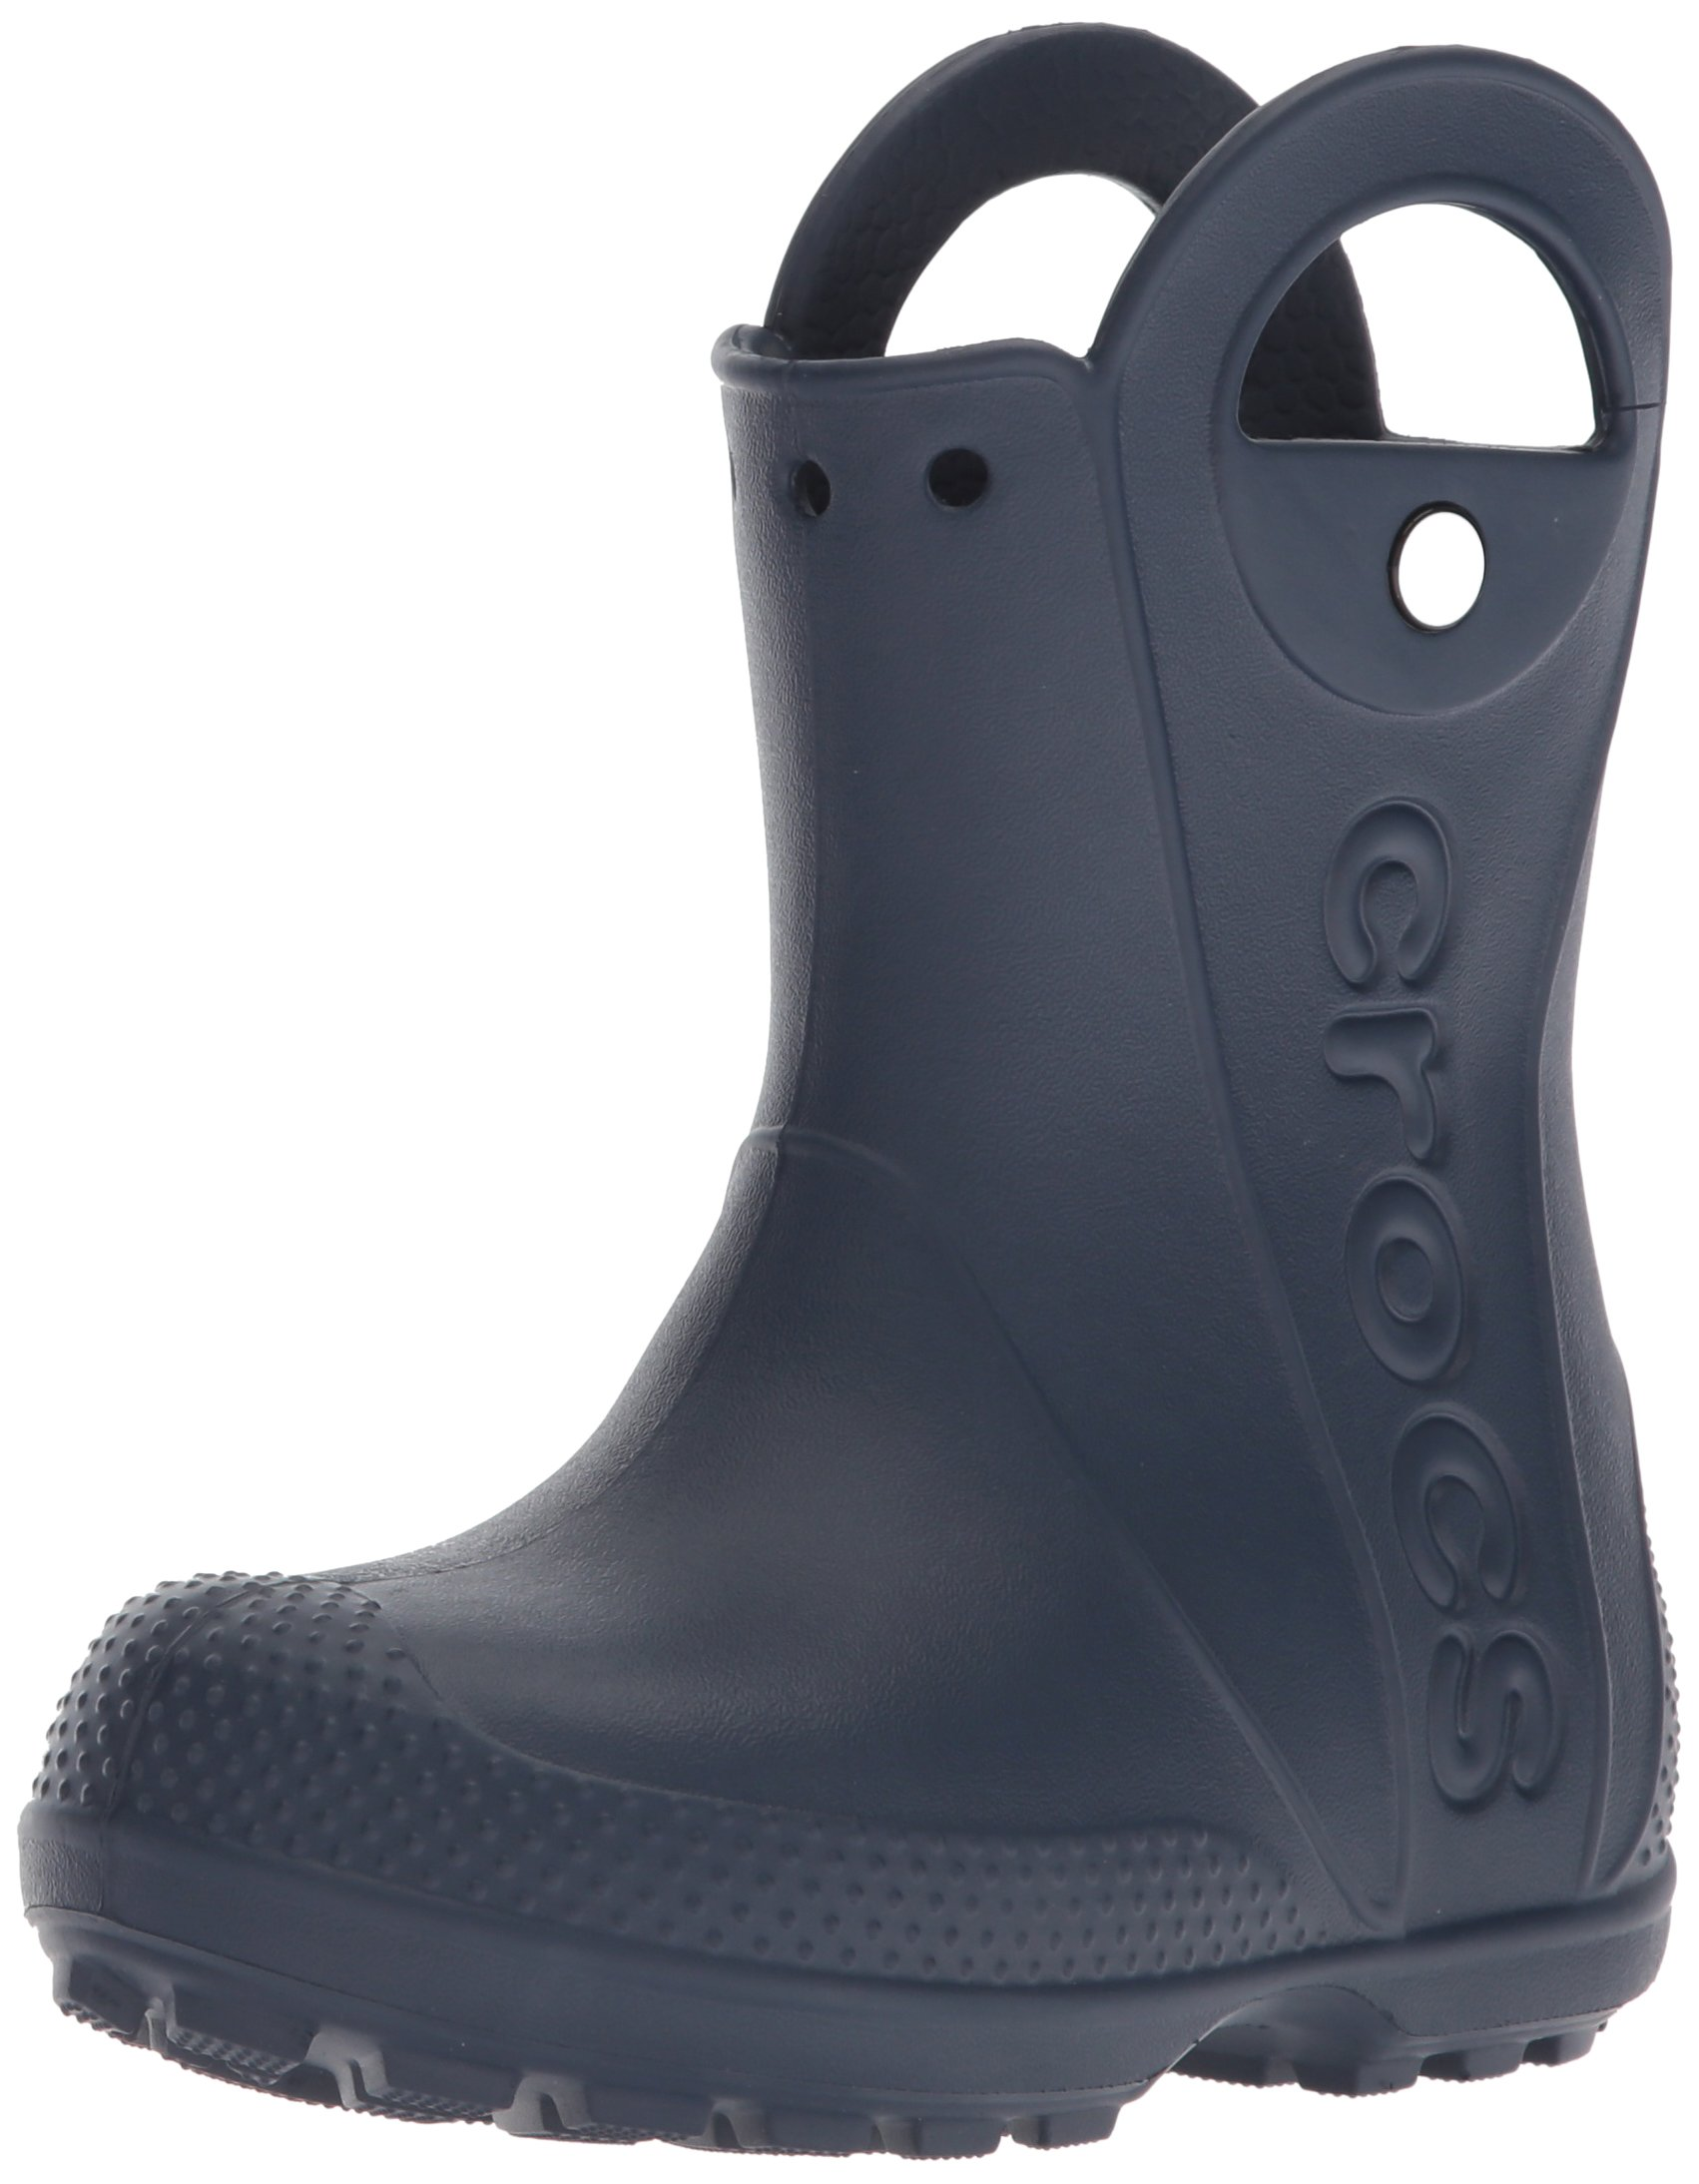 Crocs Unisex-Kids Handle It Rain Boots, Navy, 13 M US Little Kids